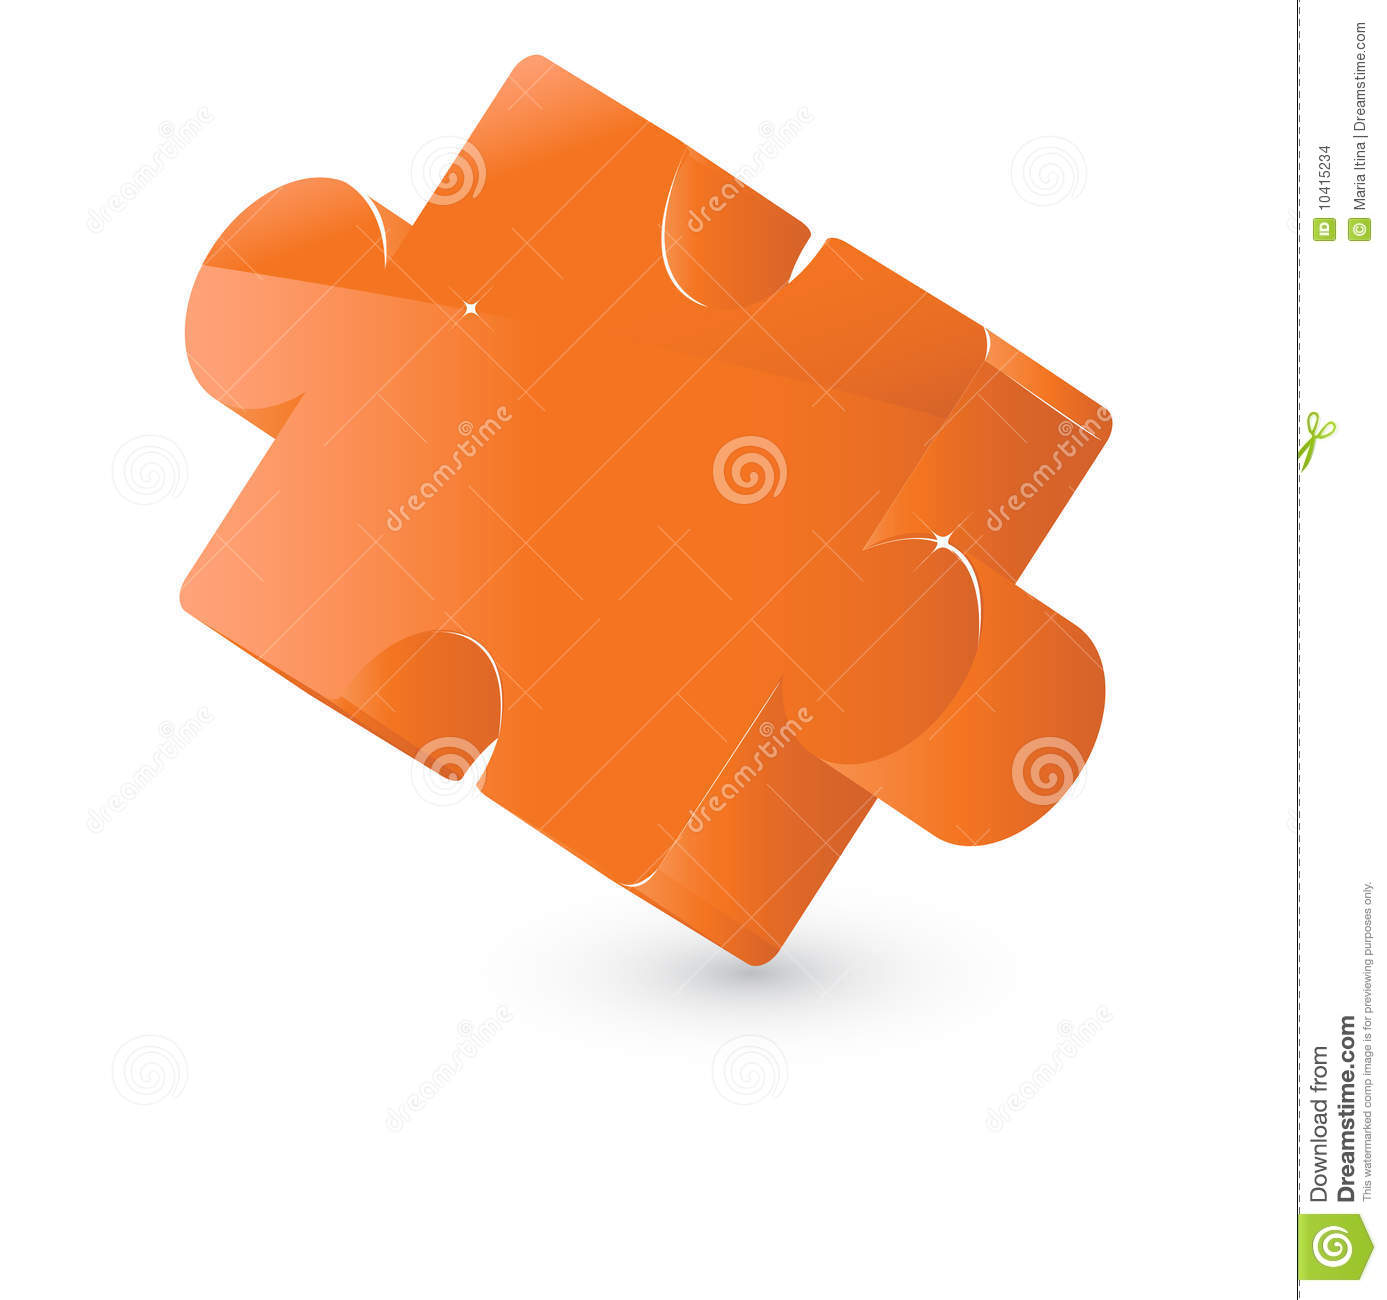 Puzzle jigsaw element stock vector. Illustration of ...